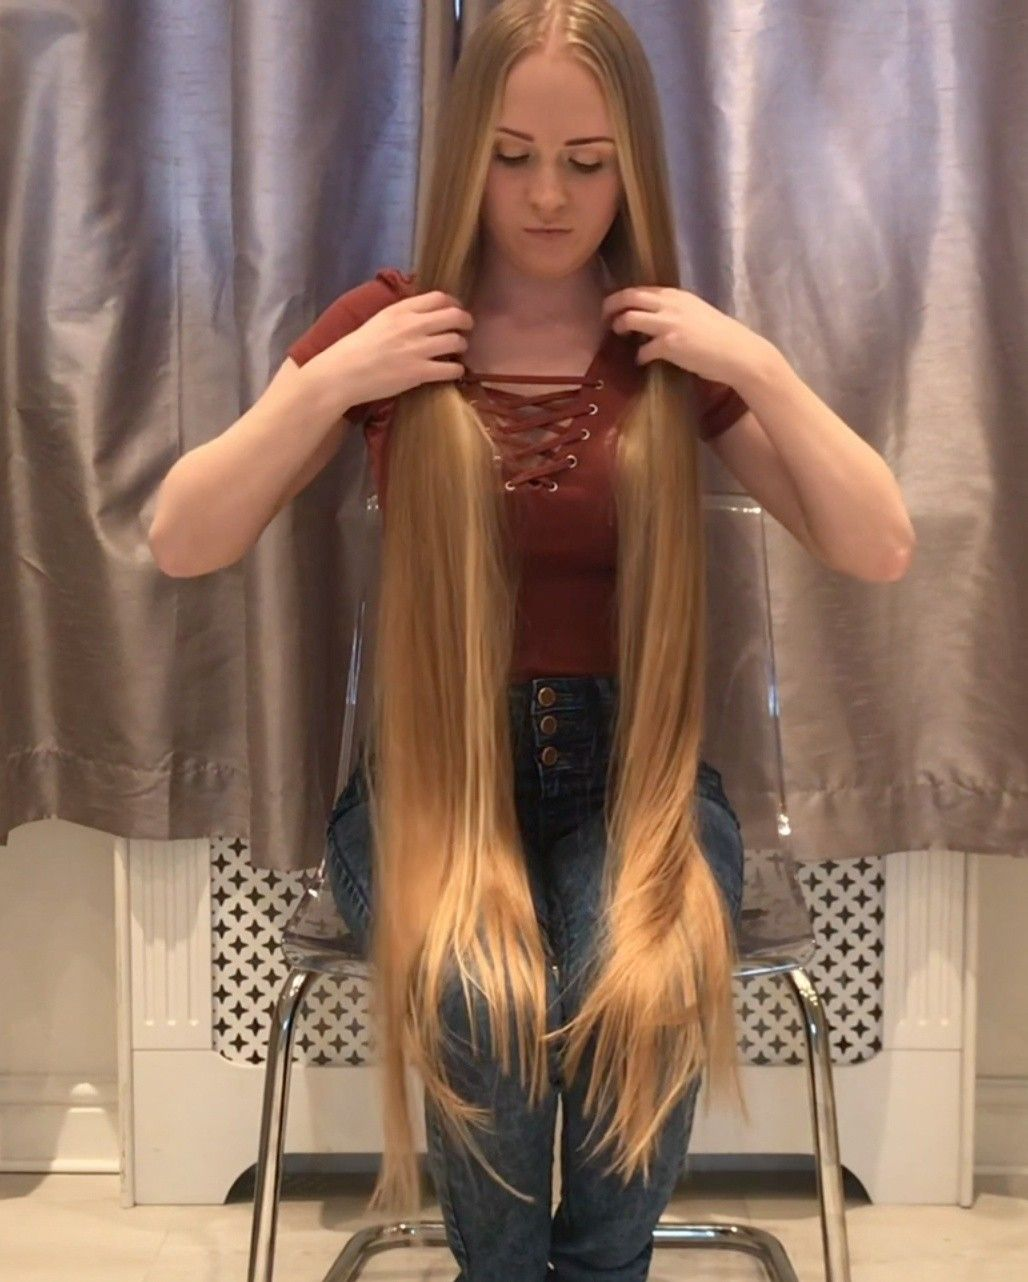 Summer Hair Colors That Will Be Huge in 2019 #blackhair # blonde Braids high ponytails # blonde Braids high ponytails